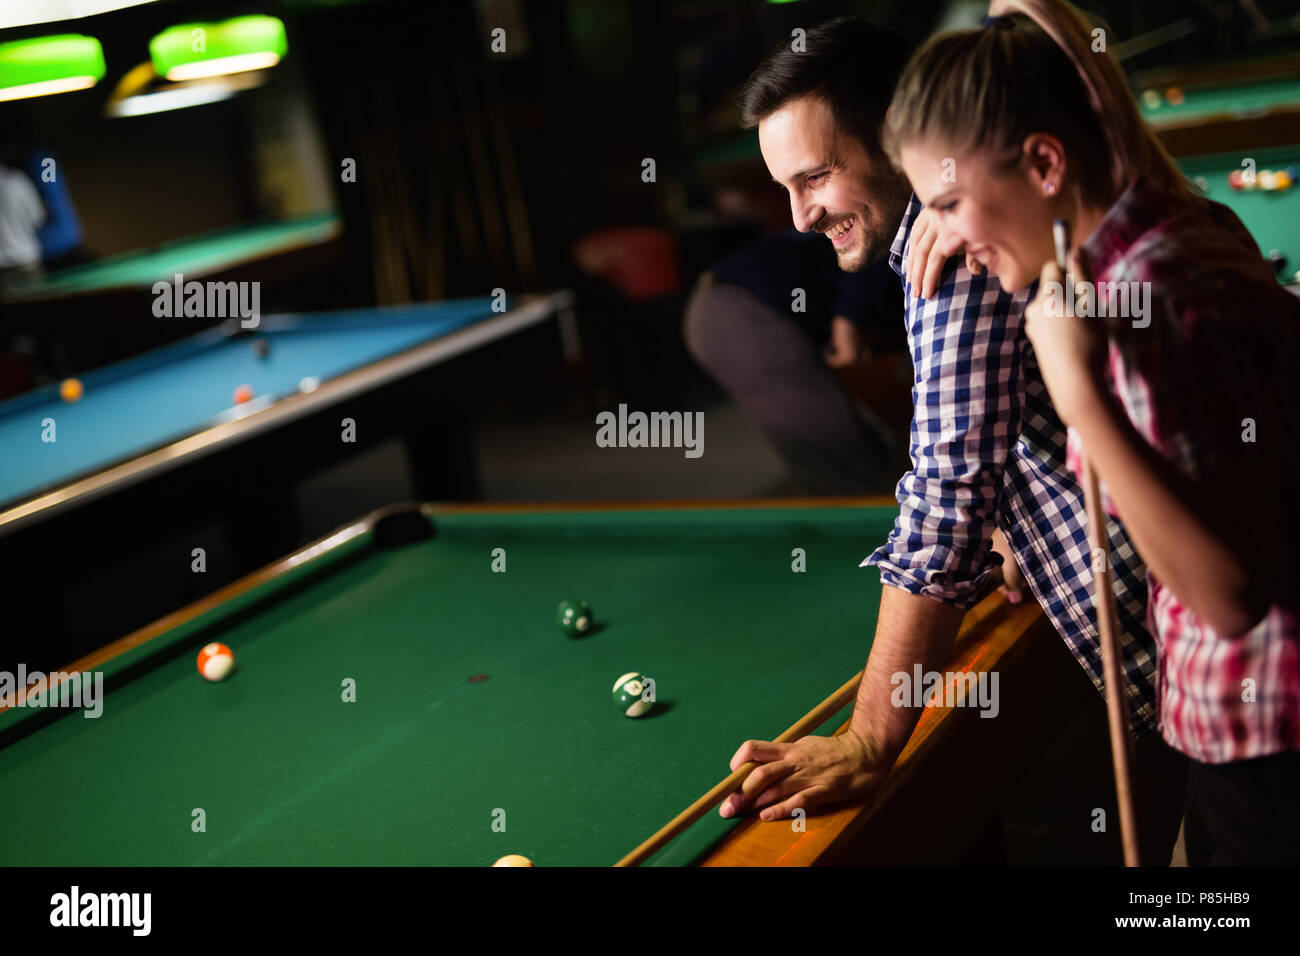 Young couple playing snooker together in bar - Stock Image